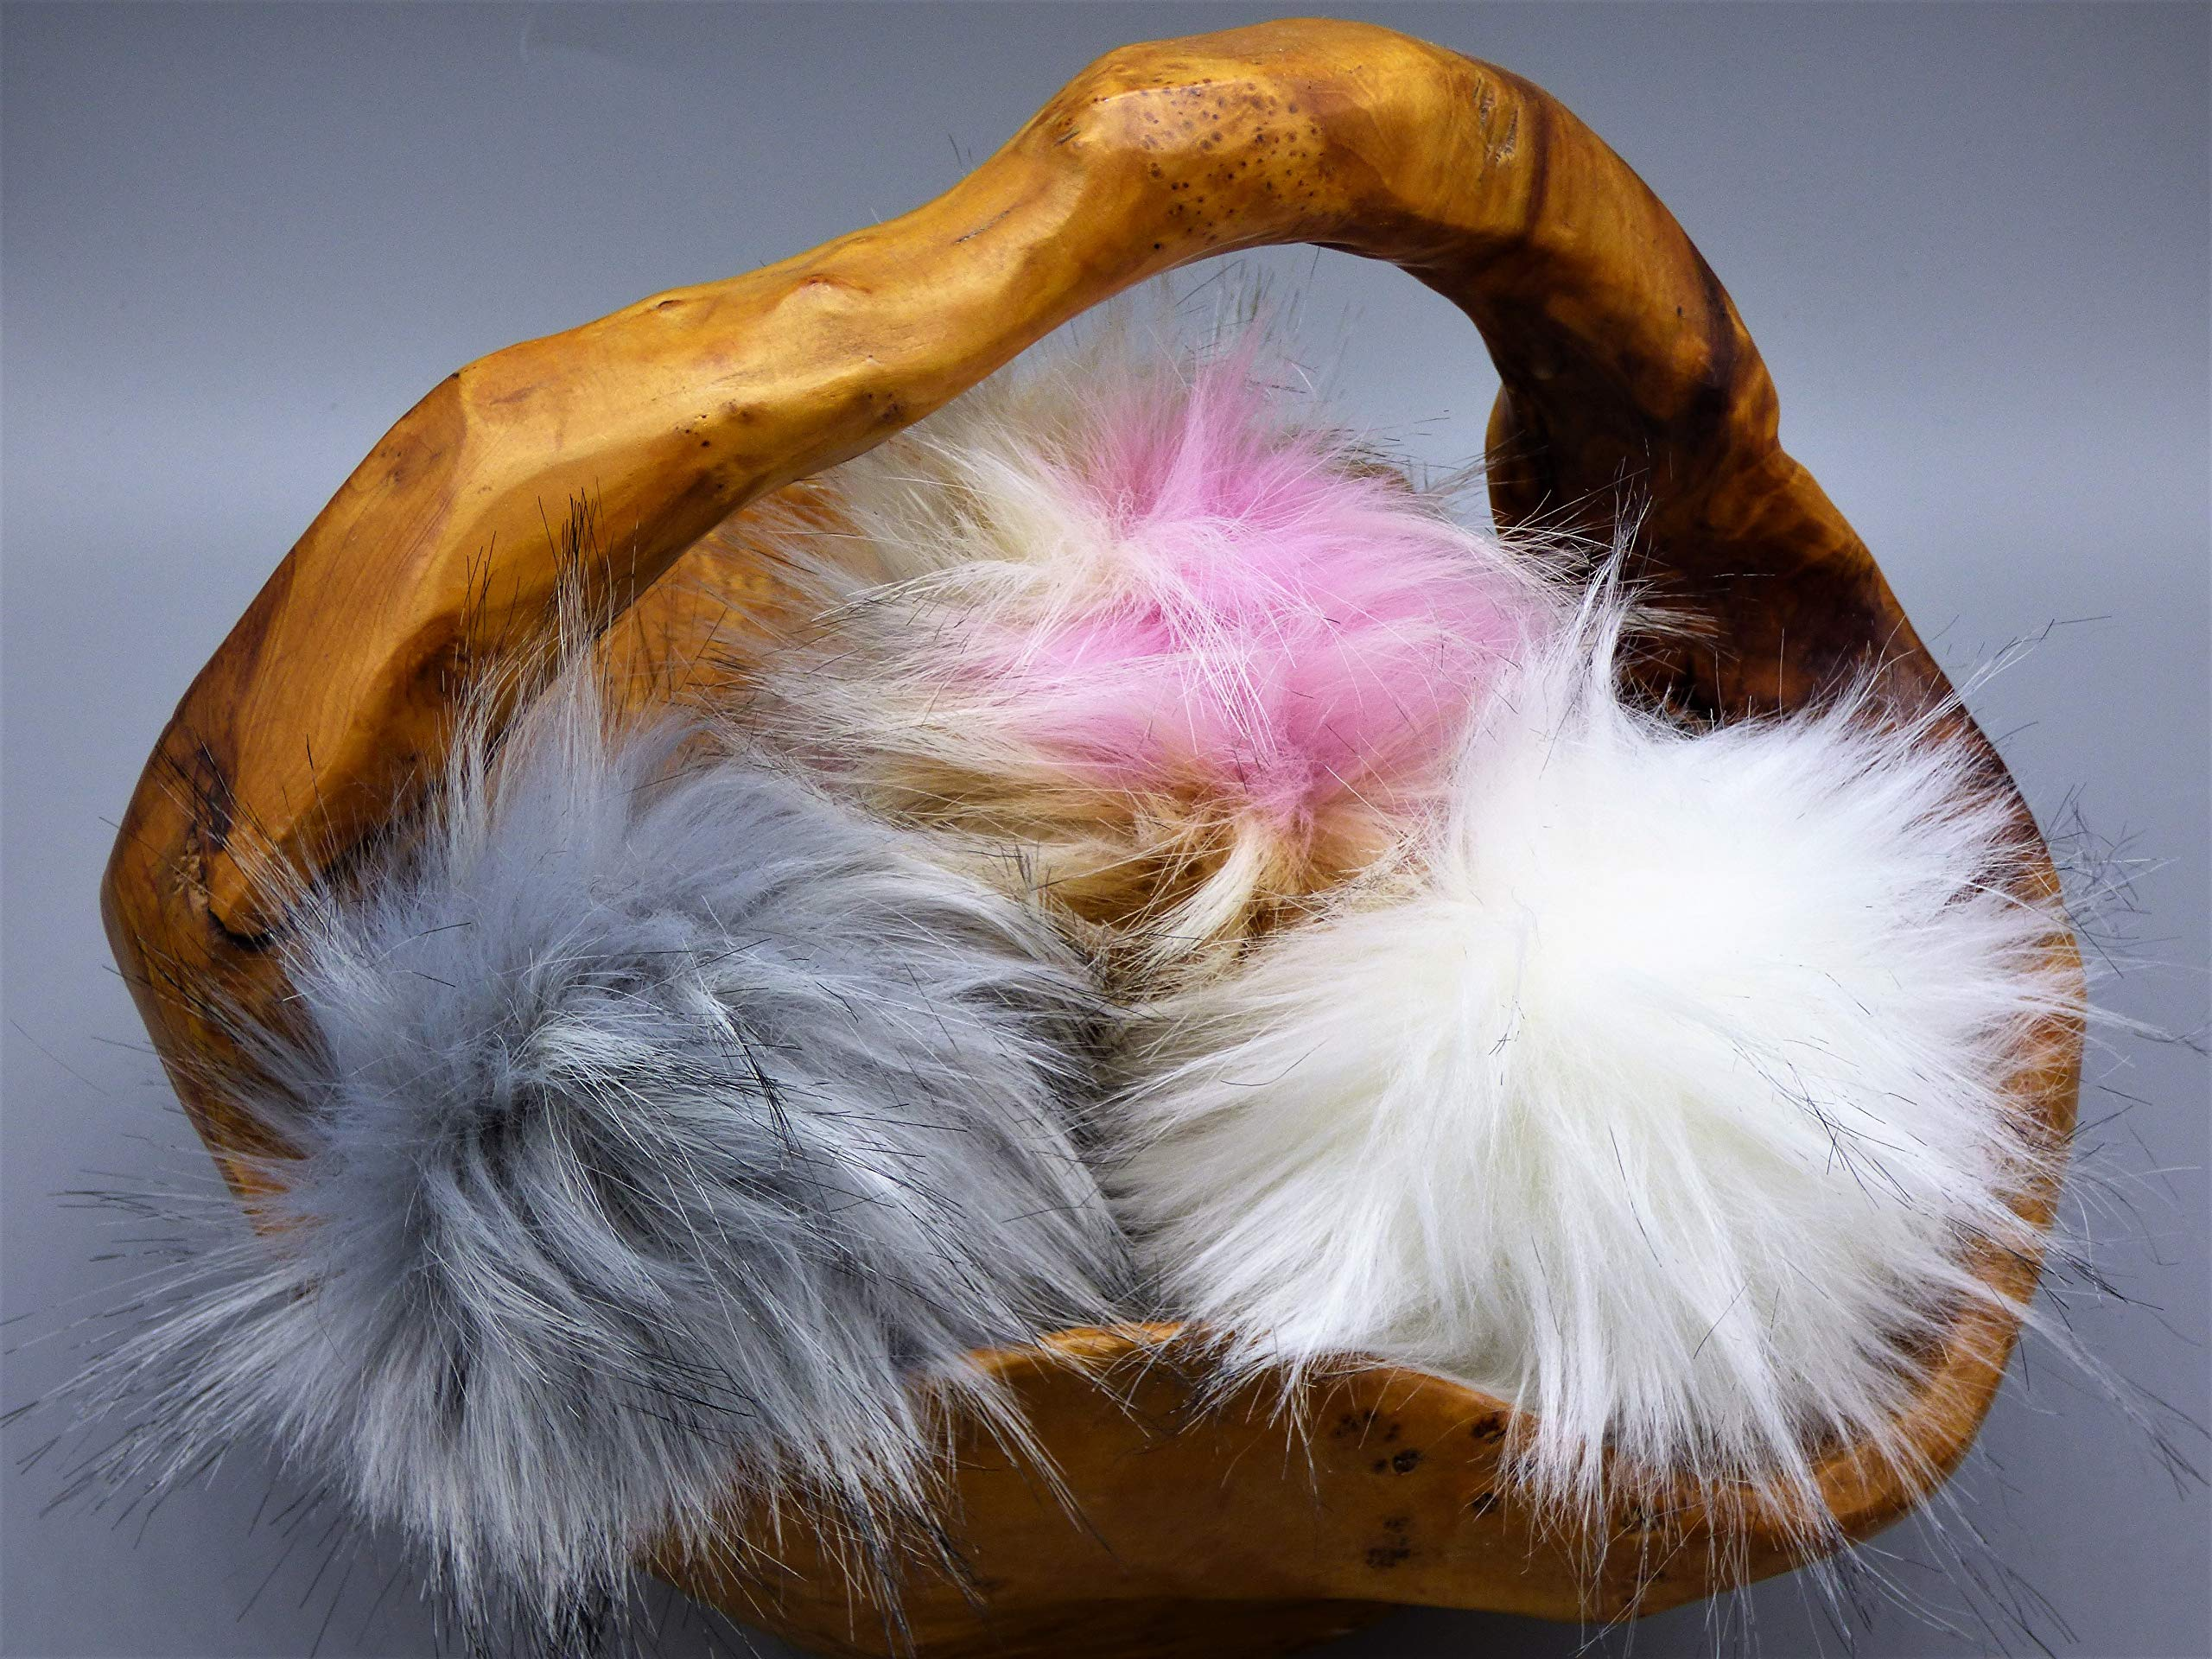 Faux Fur Pom Pom Balls | Extra Large {5-6 INCHES} Set of 3 Removable Pompoms with Snaps for Knitting Accessories | DIY Hats and Crafts | Pastel Assortment by Haven-Sent by Haven-Sent (Image #2)